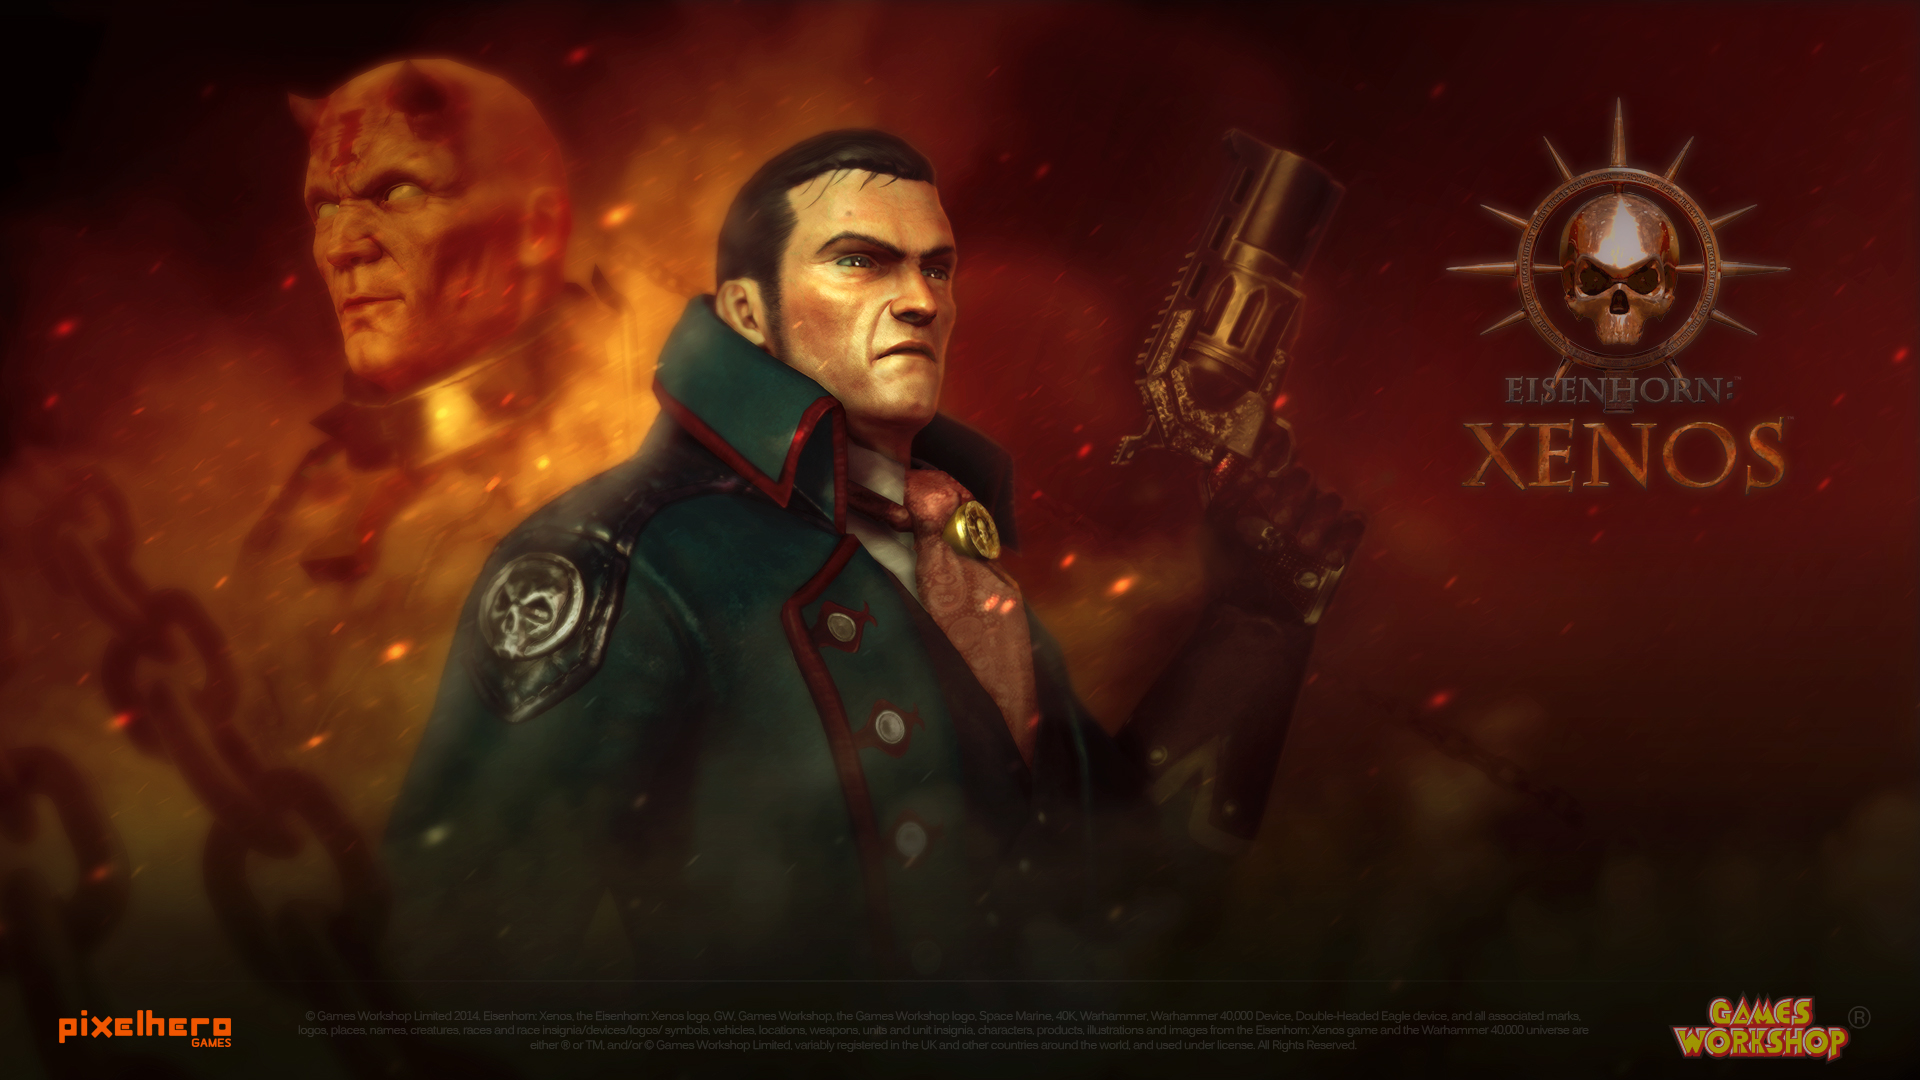 Eisenhorn: XENOS interview in Starburst Magazine!